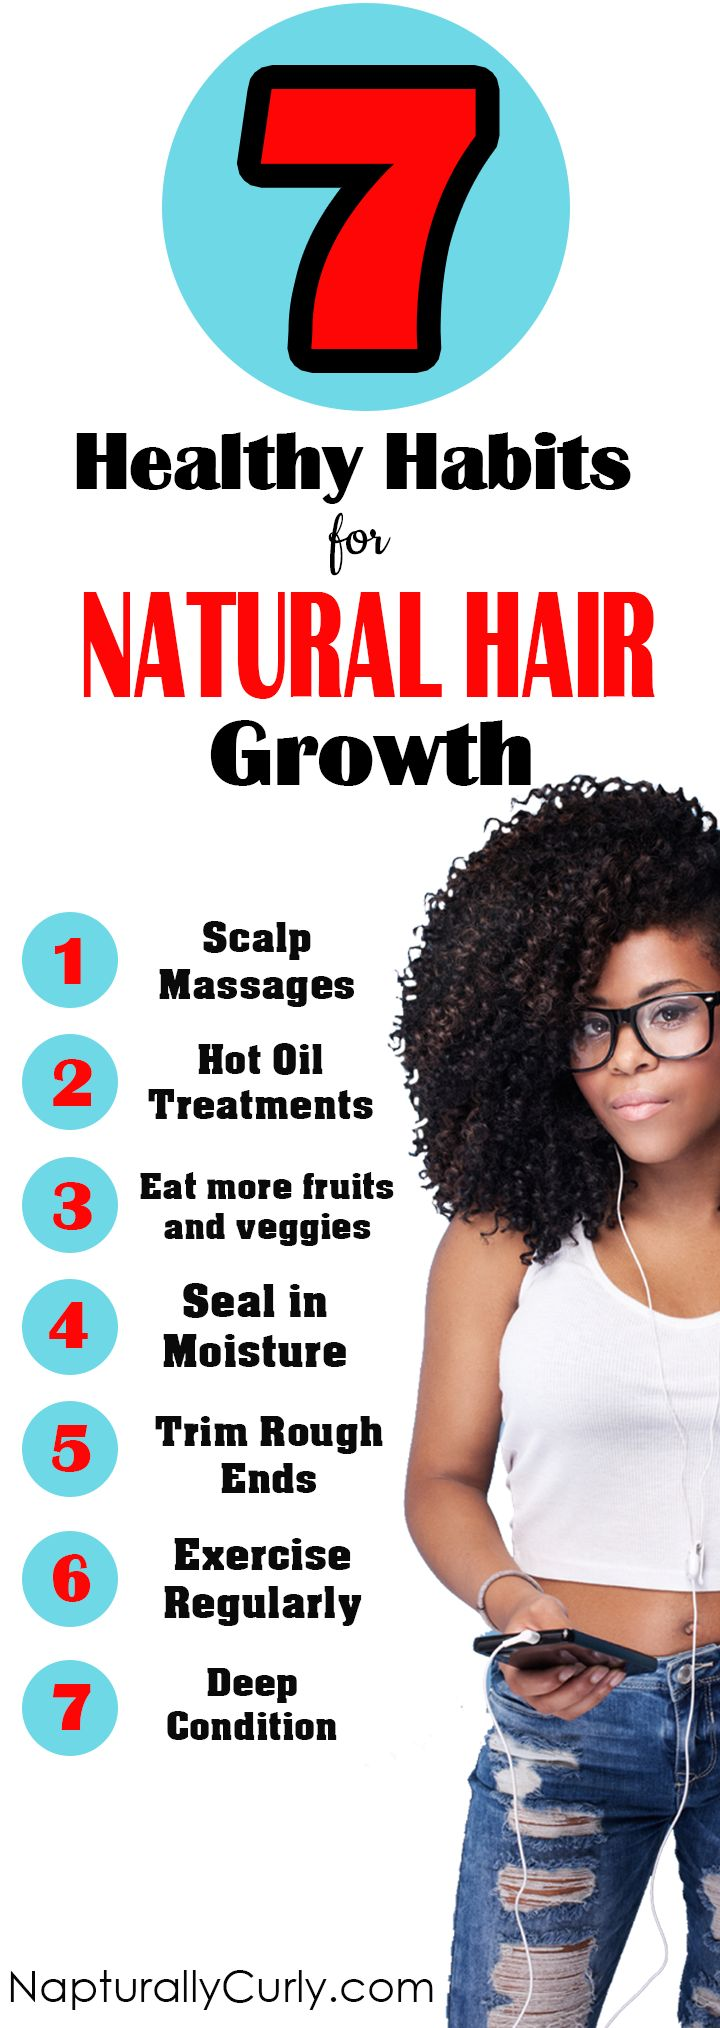 Natural hairstyles for short hair black women hair and tattoos - Great Habits To Grow Your Natural Hair Longer